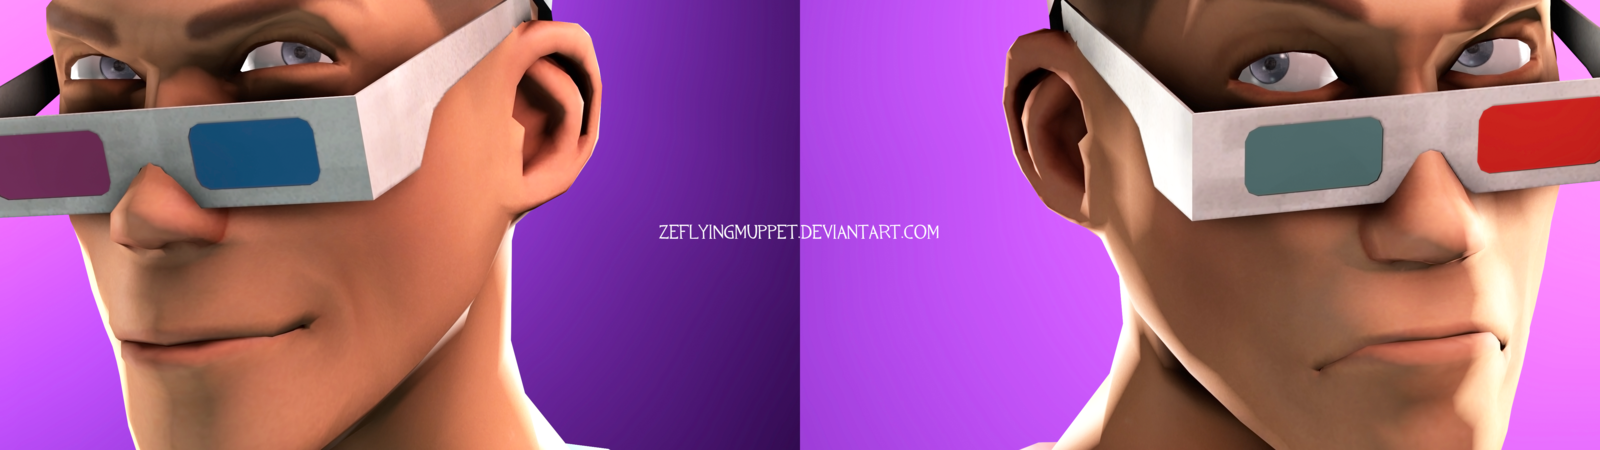 Dual Monitor wallpaper cool stuff by ZeFlyingMuppet 1600x450